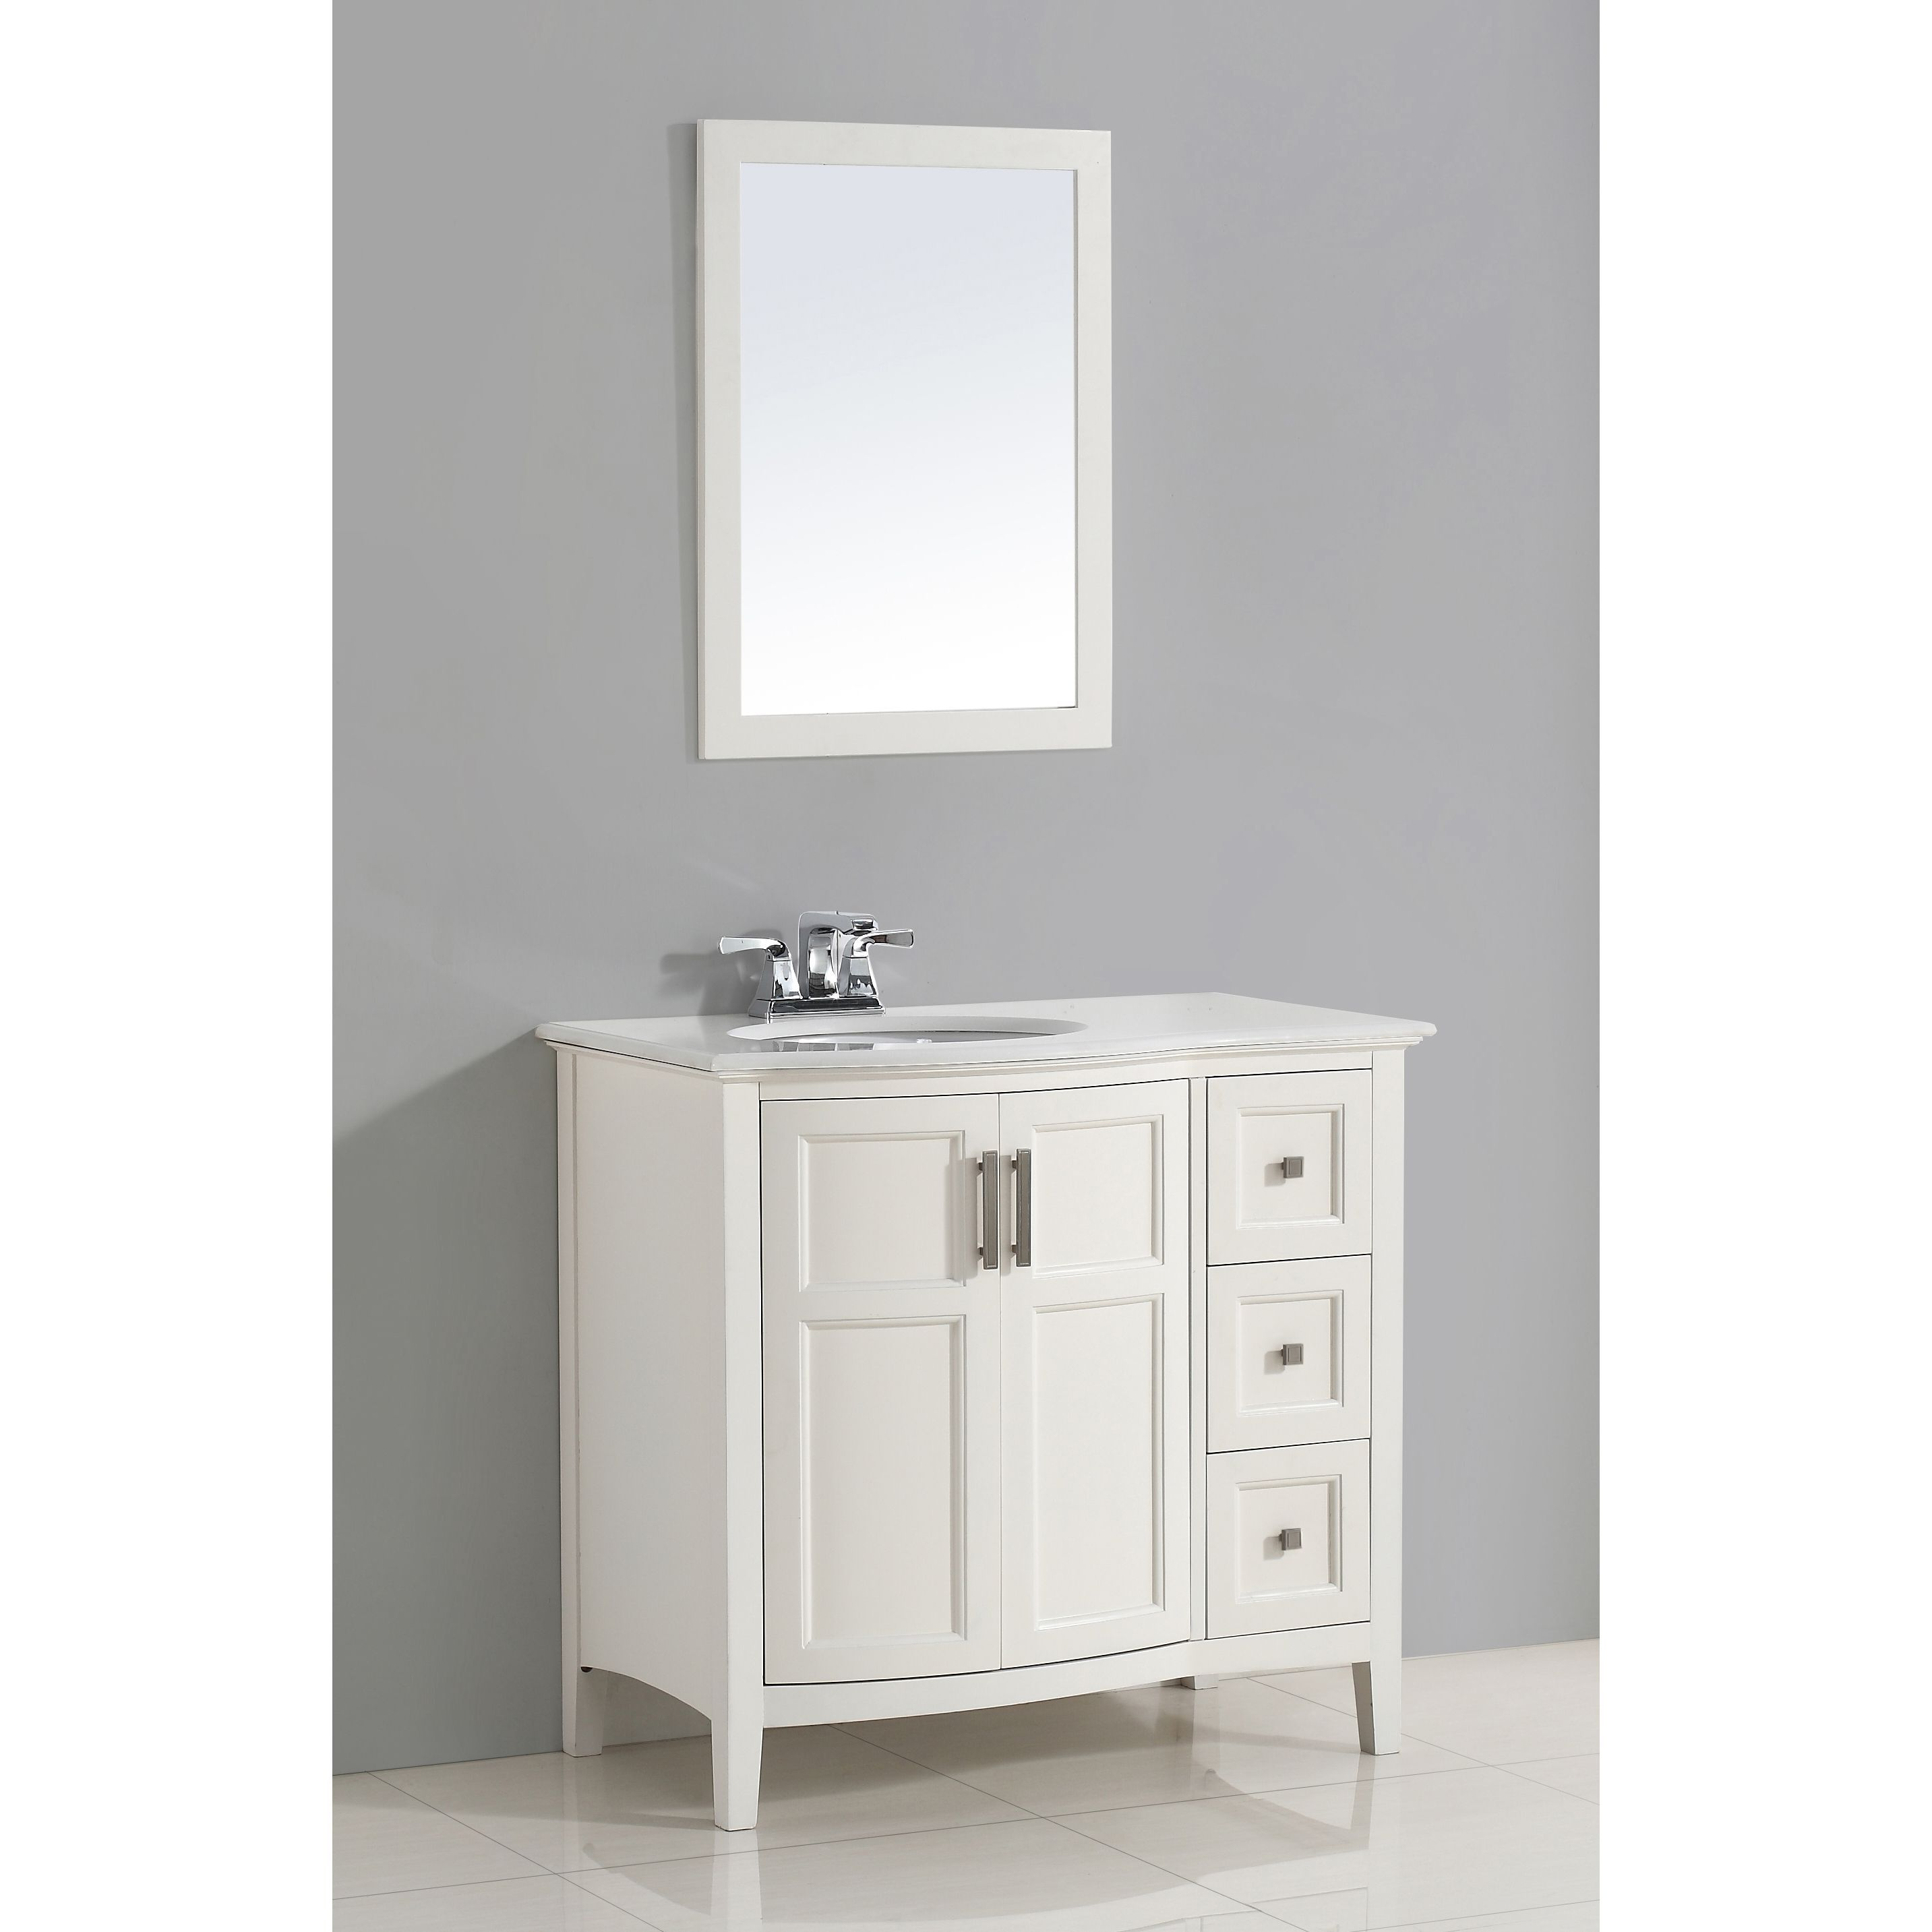 Bathroom Vanity Doors wyndenhall salem white 36-inch rounded front bath vanity set with